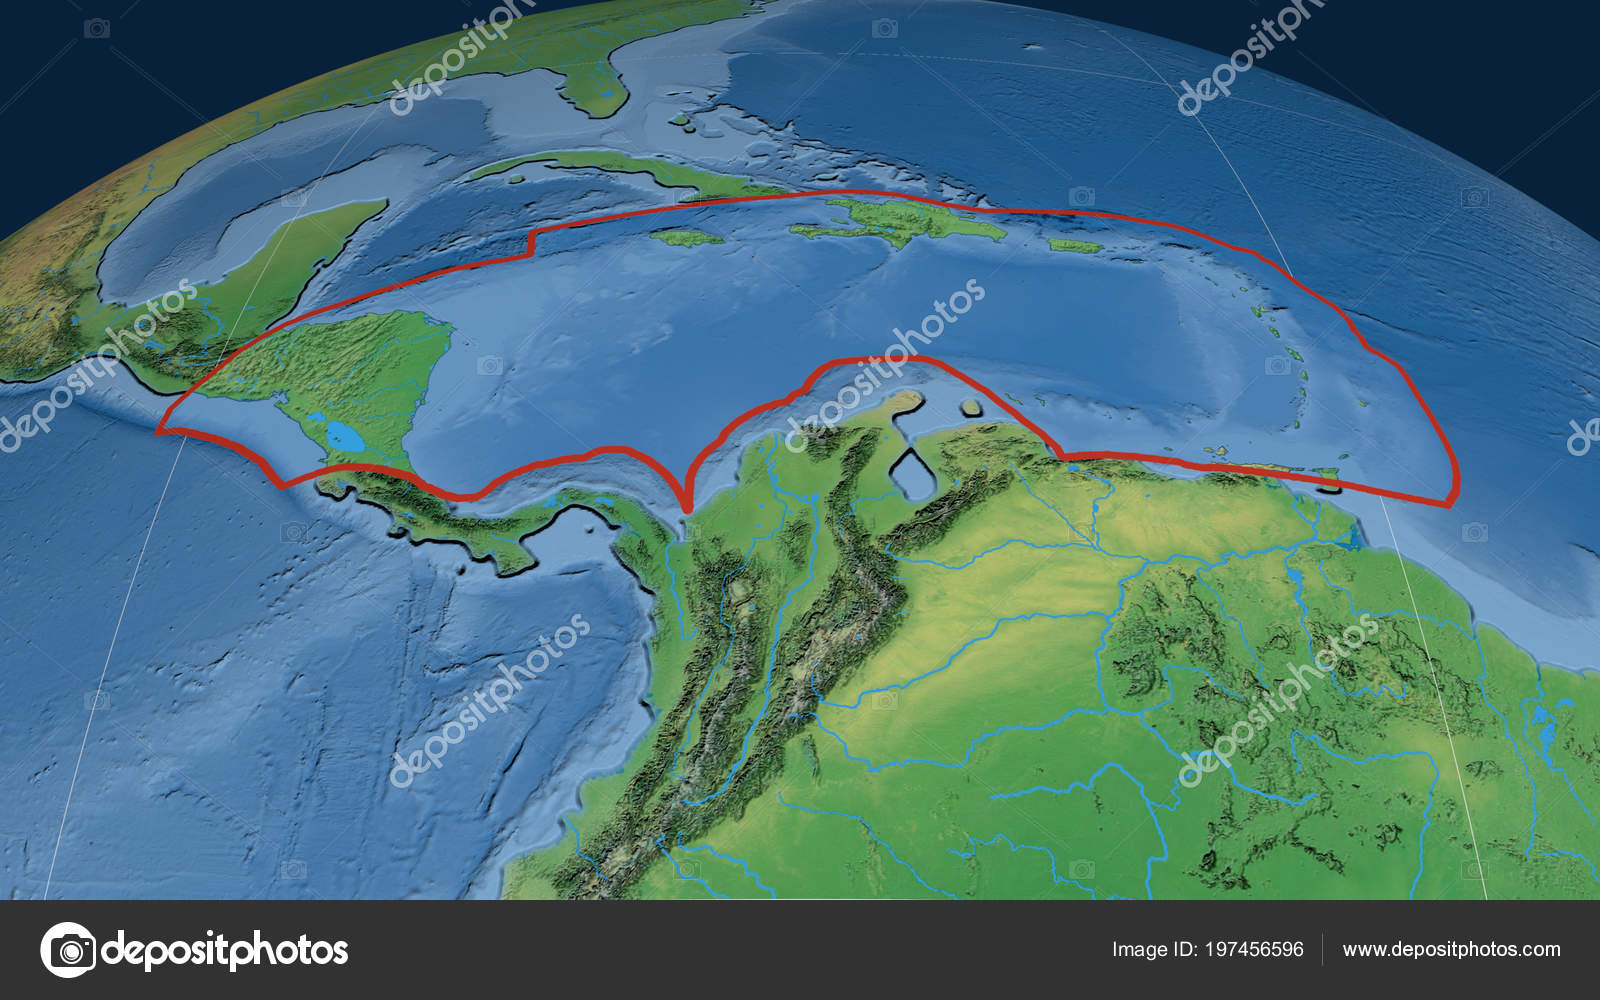 Caribbean Topographic Map.Caribbean Tectonic Plate Outlined Globe Natural Earth Topographic